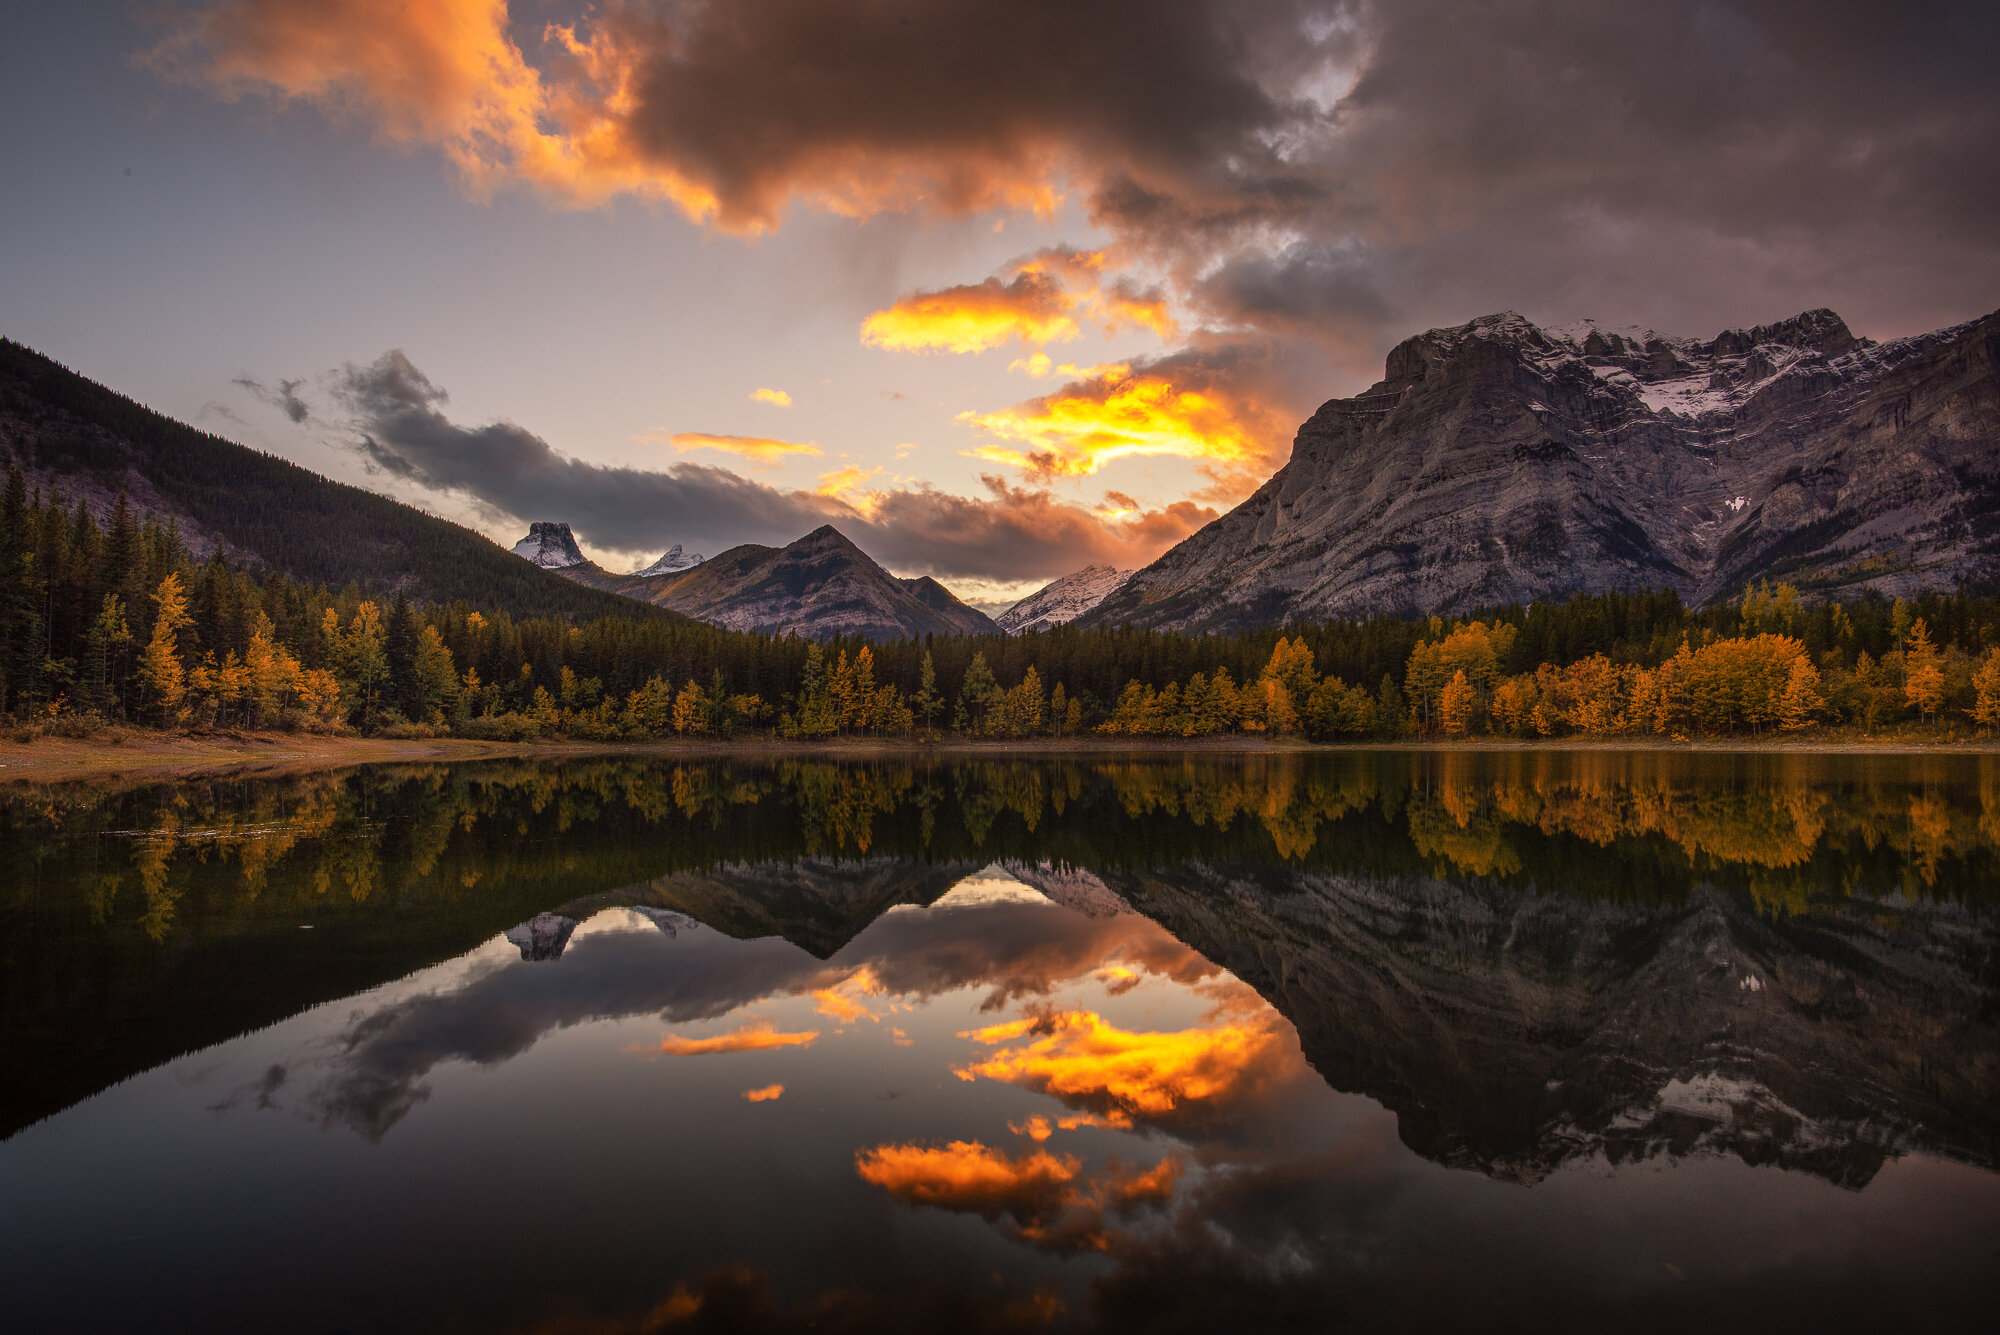 Kananaskis Country Photography: 'Wedge Pond Fire'